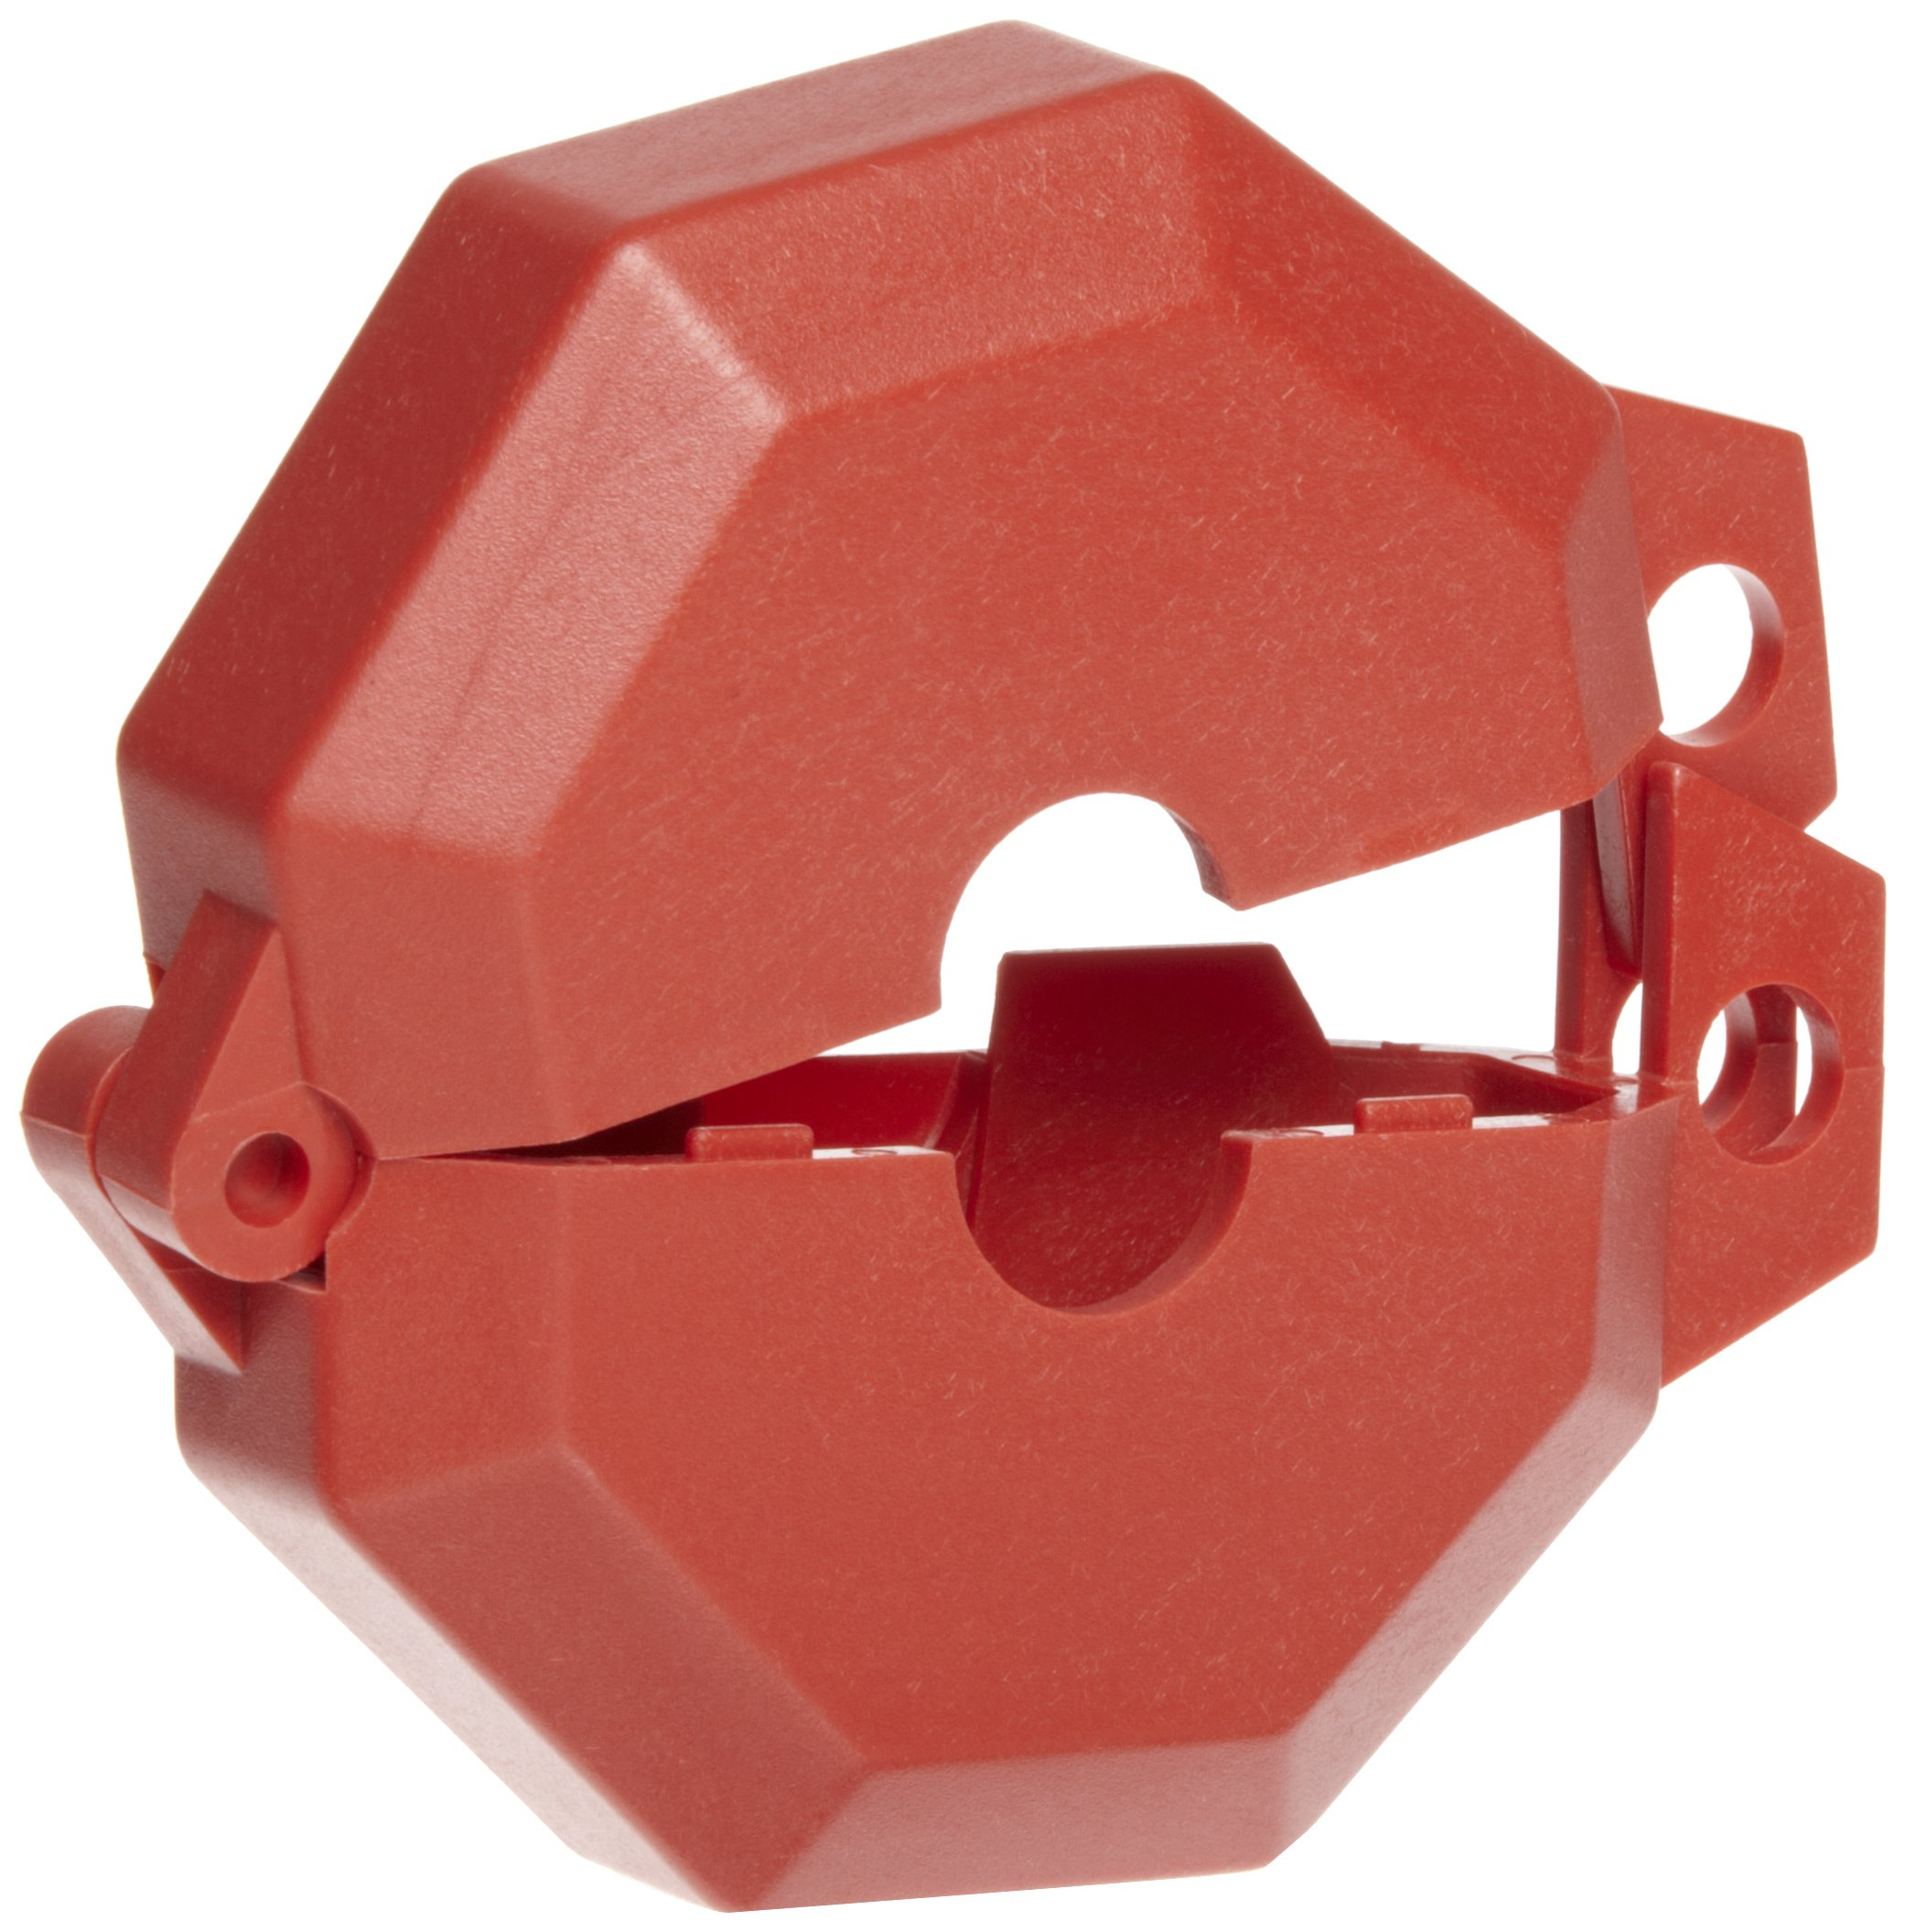 Accuform Signs KDD470 STOPOUT Gate Valve Lockout, Fits Valve Handle Diameter 1'' to 2-1/2'', Hinged Plastic Clamshell Housing, Red